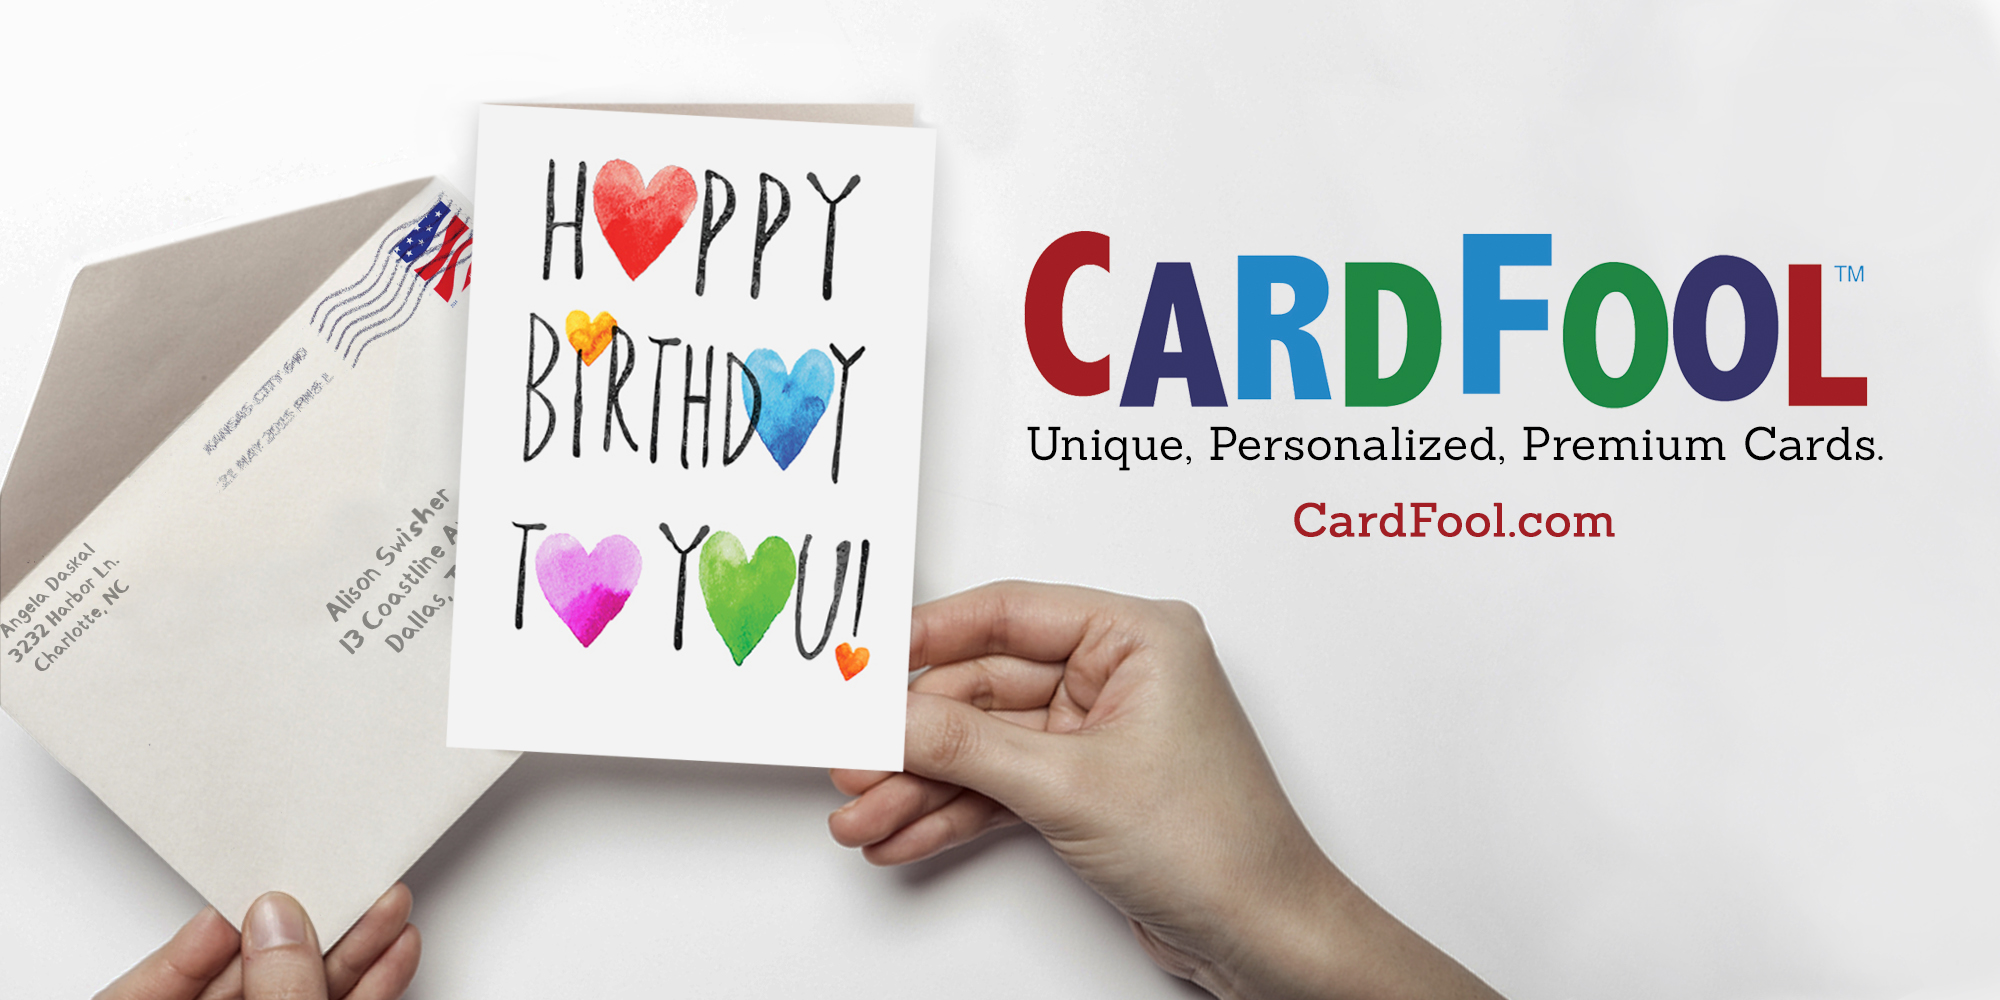 Personalize and Send Funny Birthday Cards and Ecards